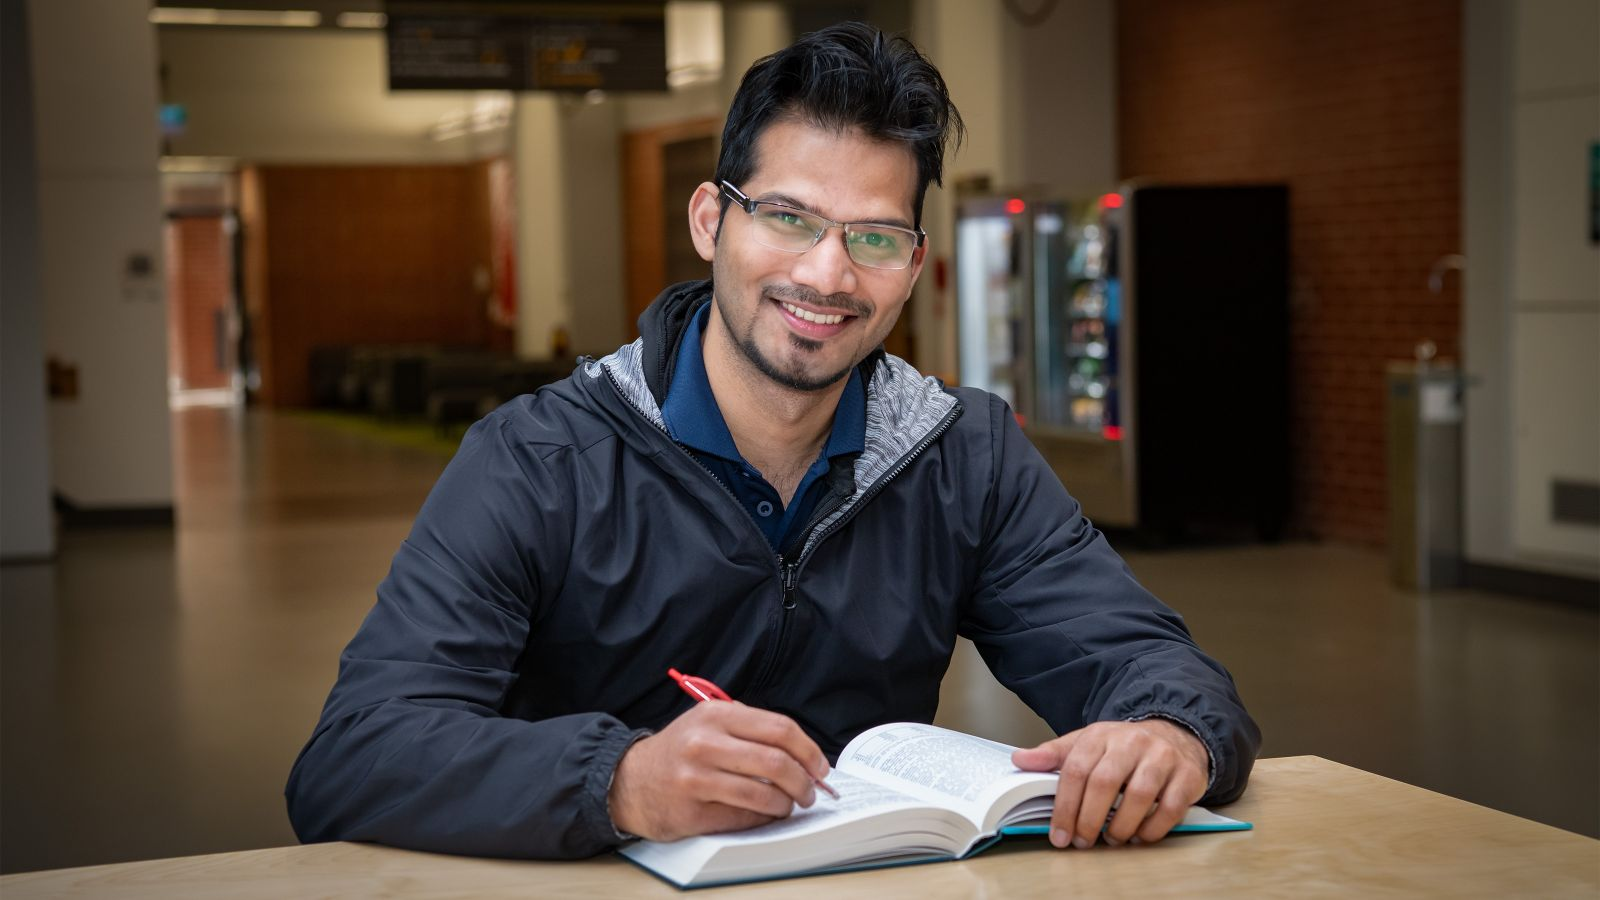 Akib Mohammad smiles at the camera while working with a book